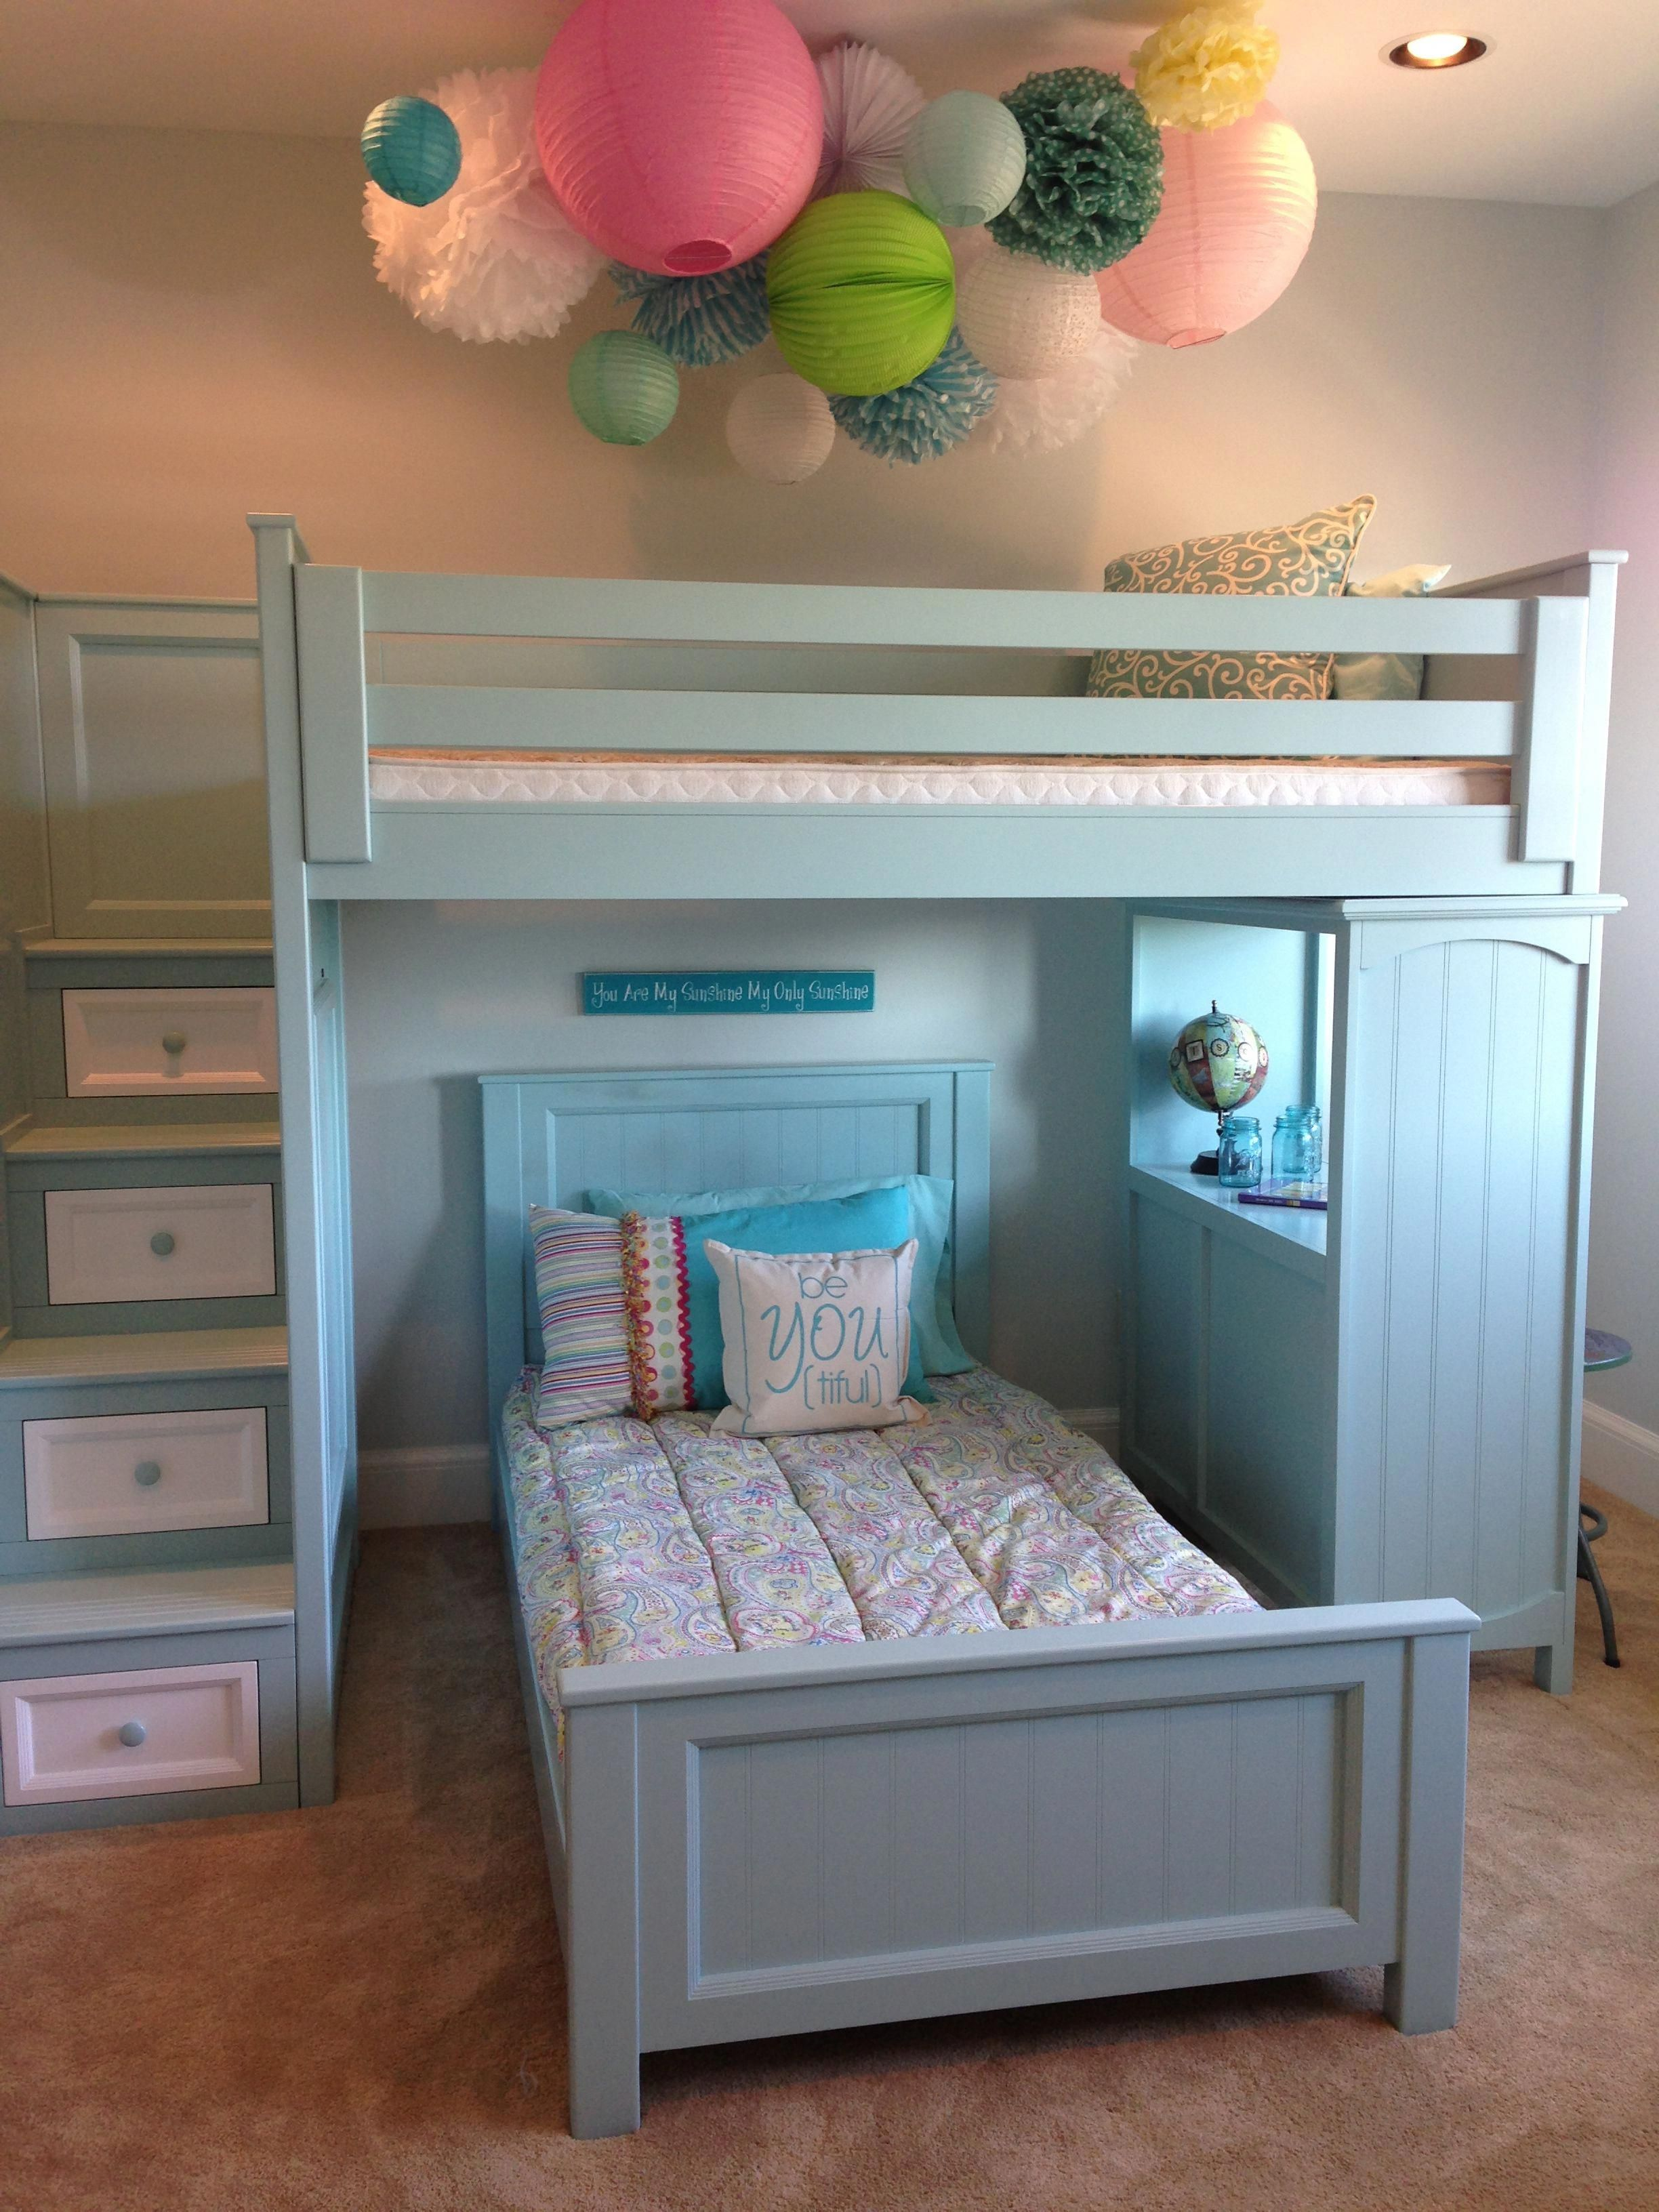 This Sydney Bunk Bed Would Be So Cute For A Girls Room Great Colors